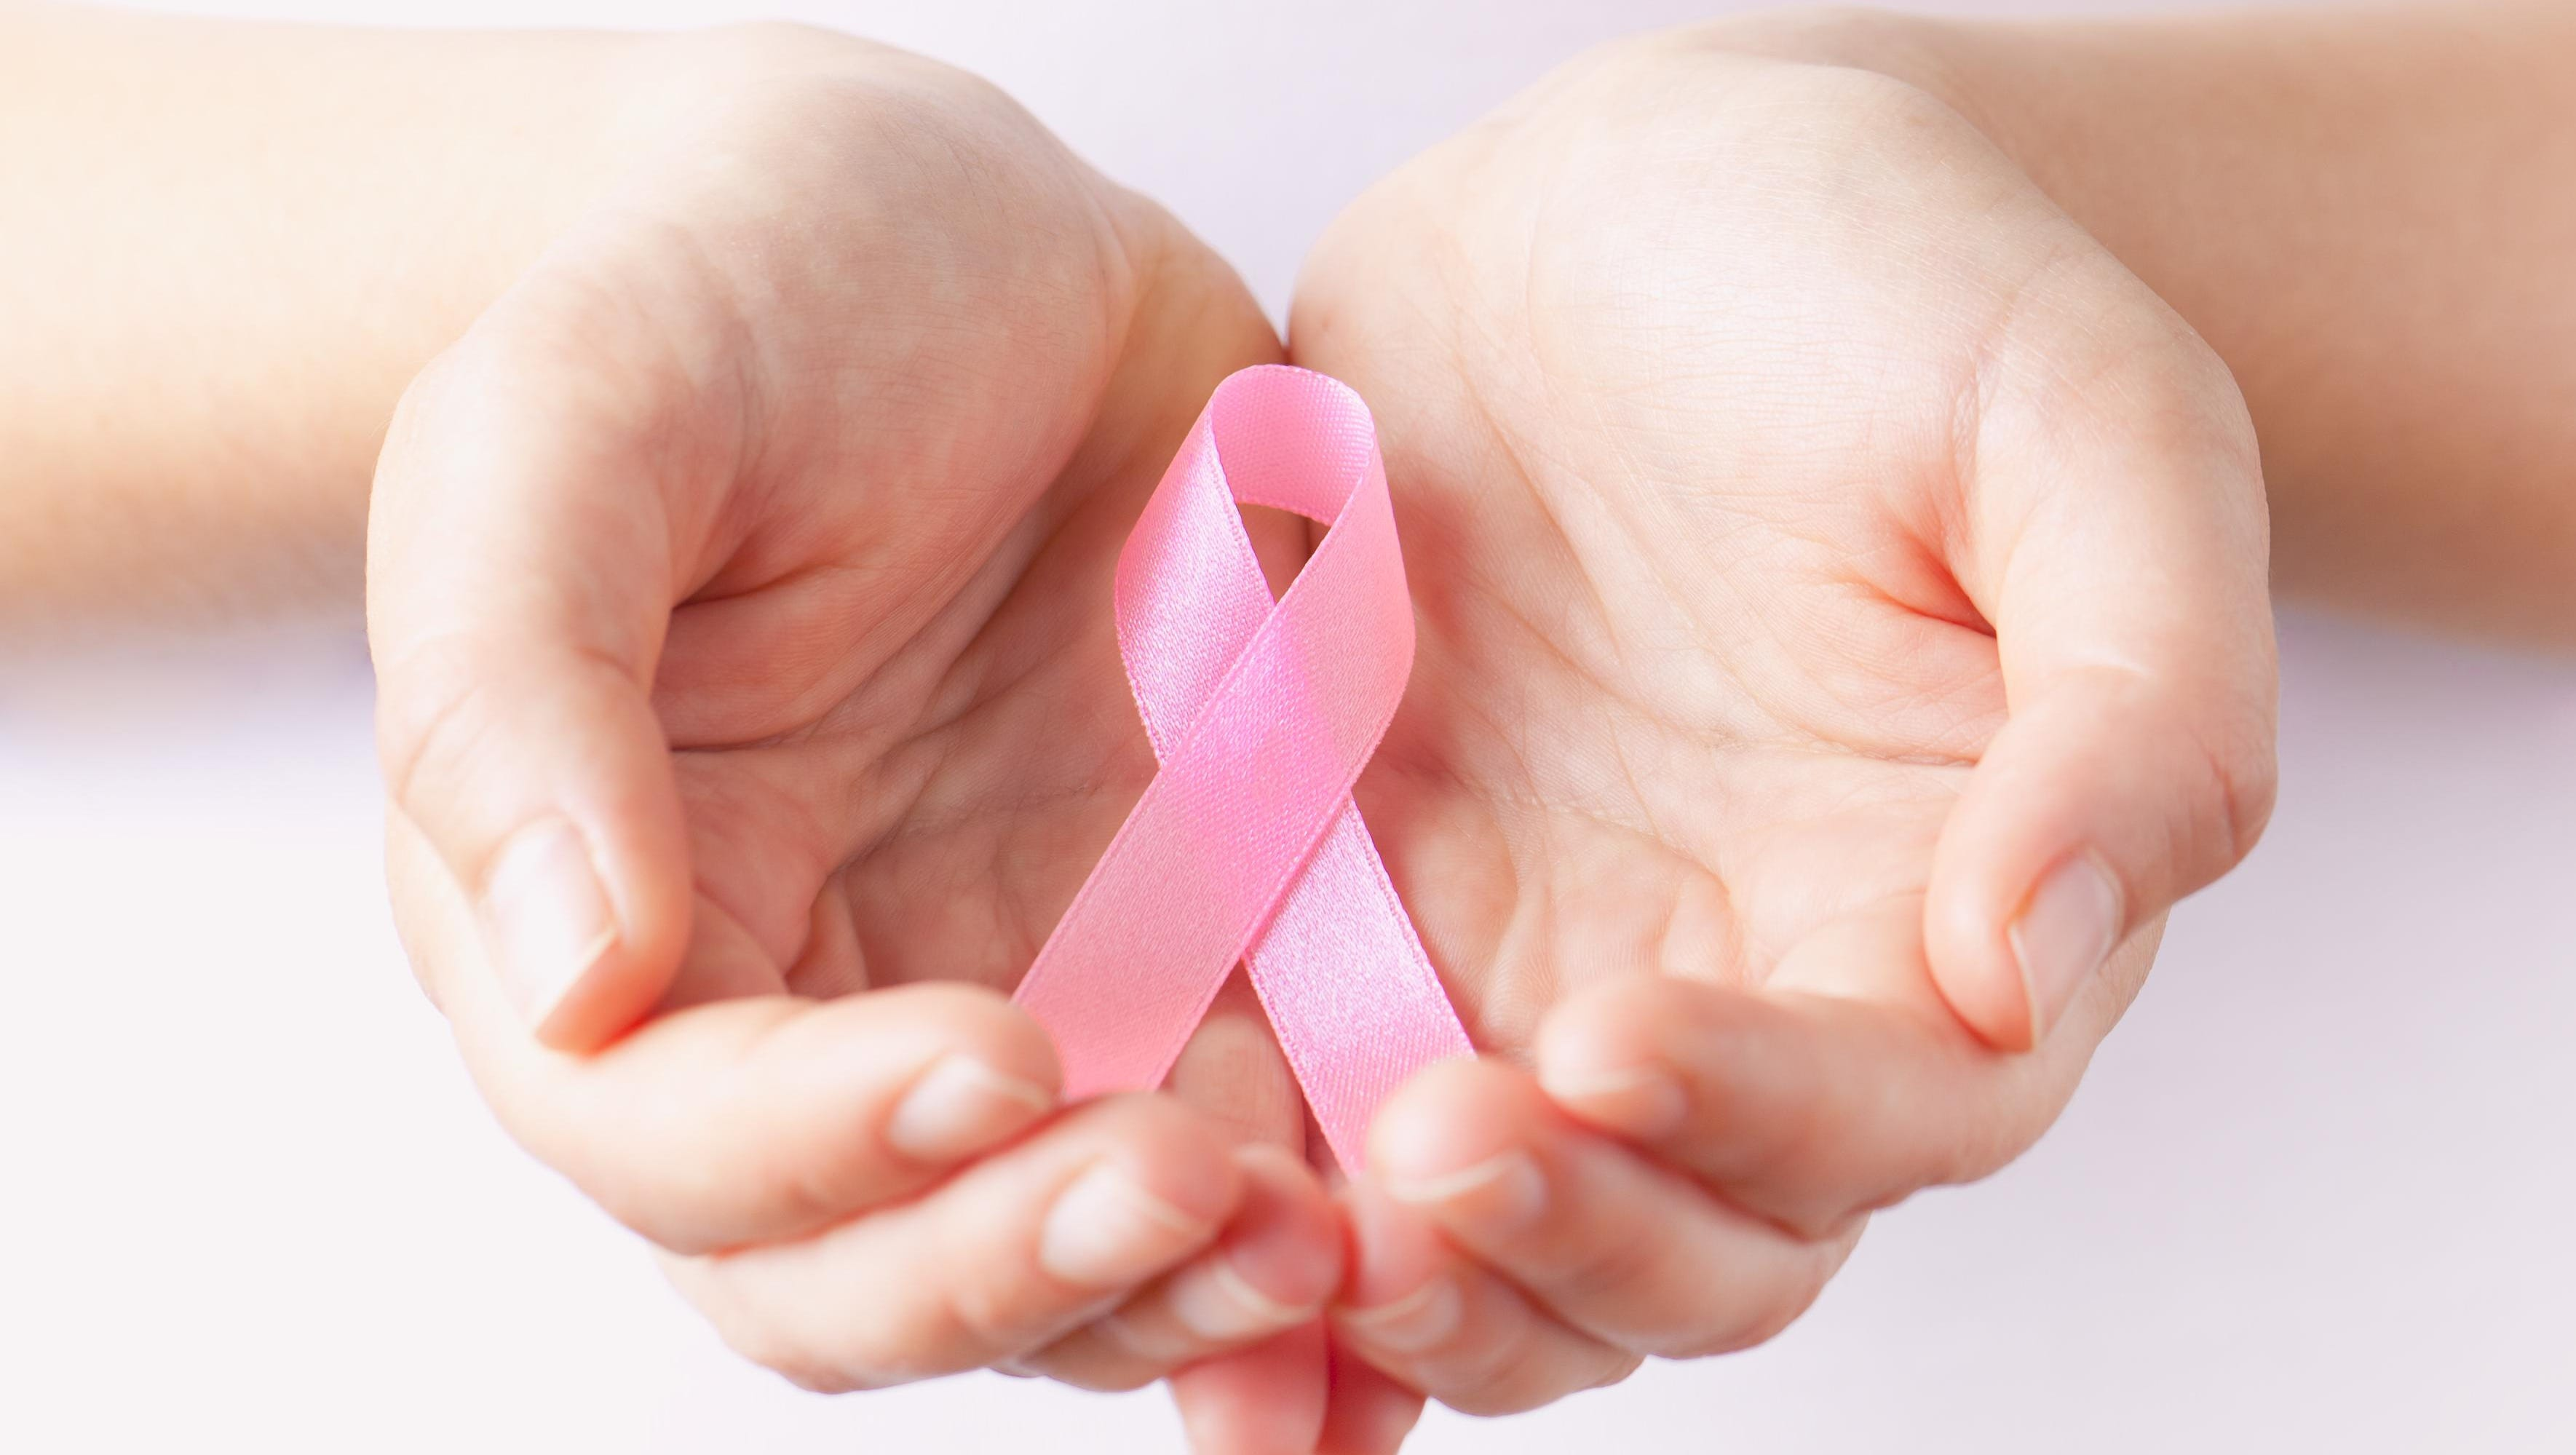 Hammerling Women And Men Should Know Signs Of Breast Cancer